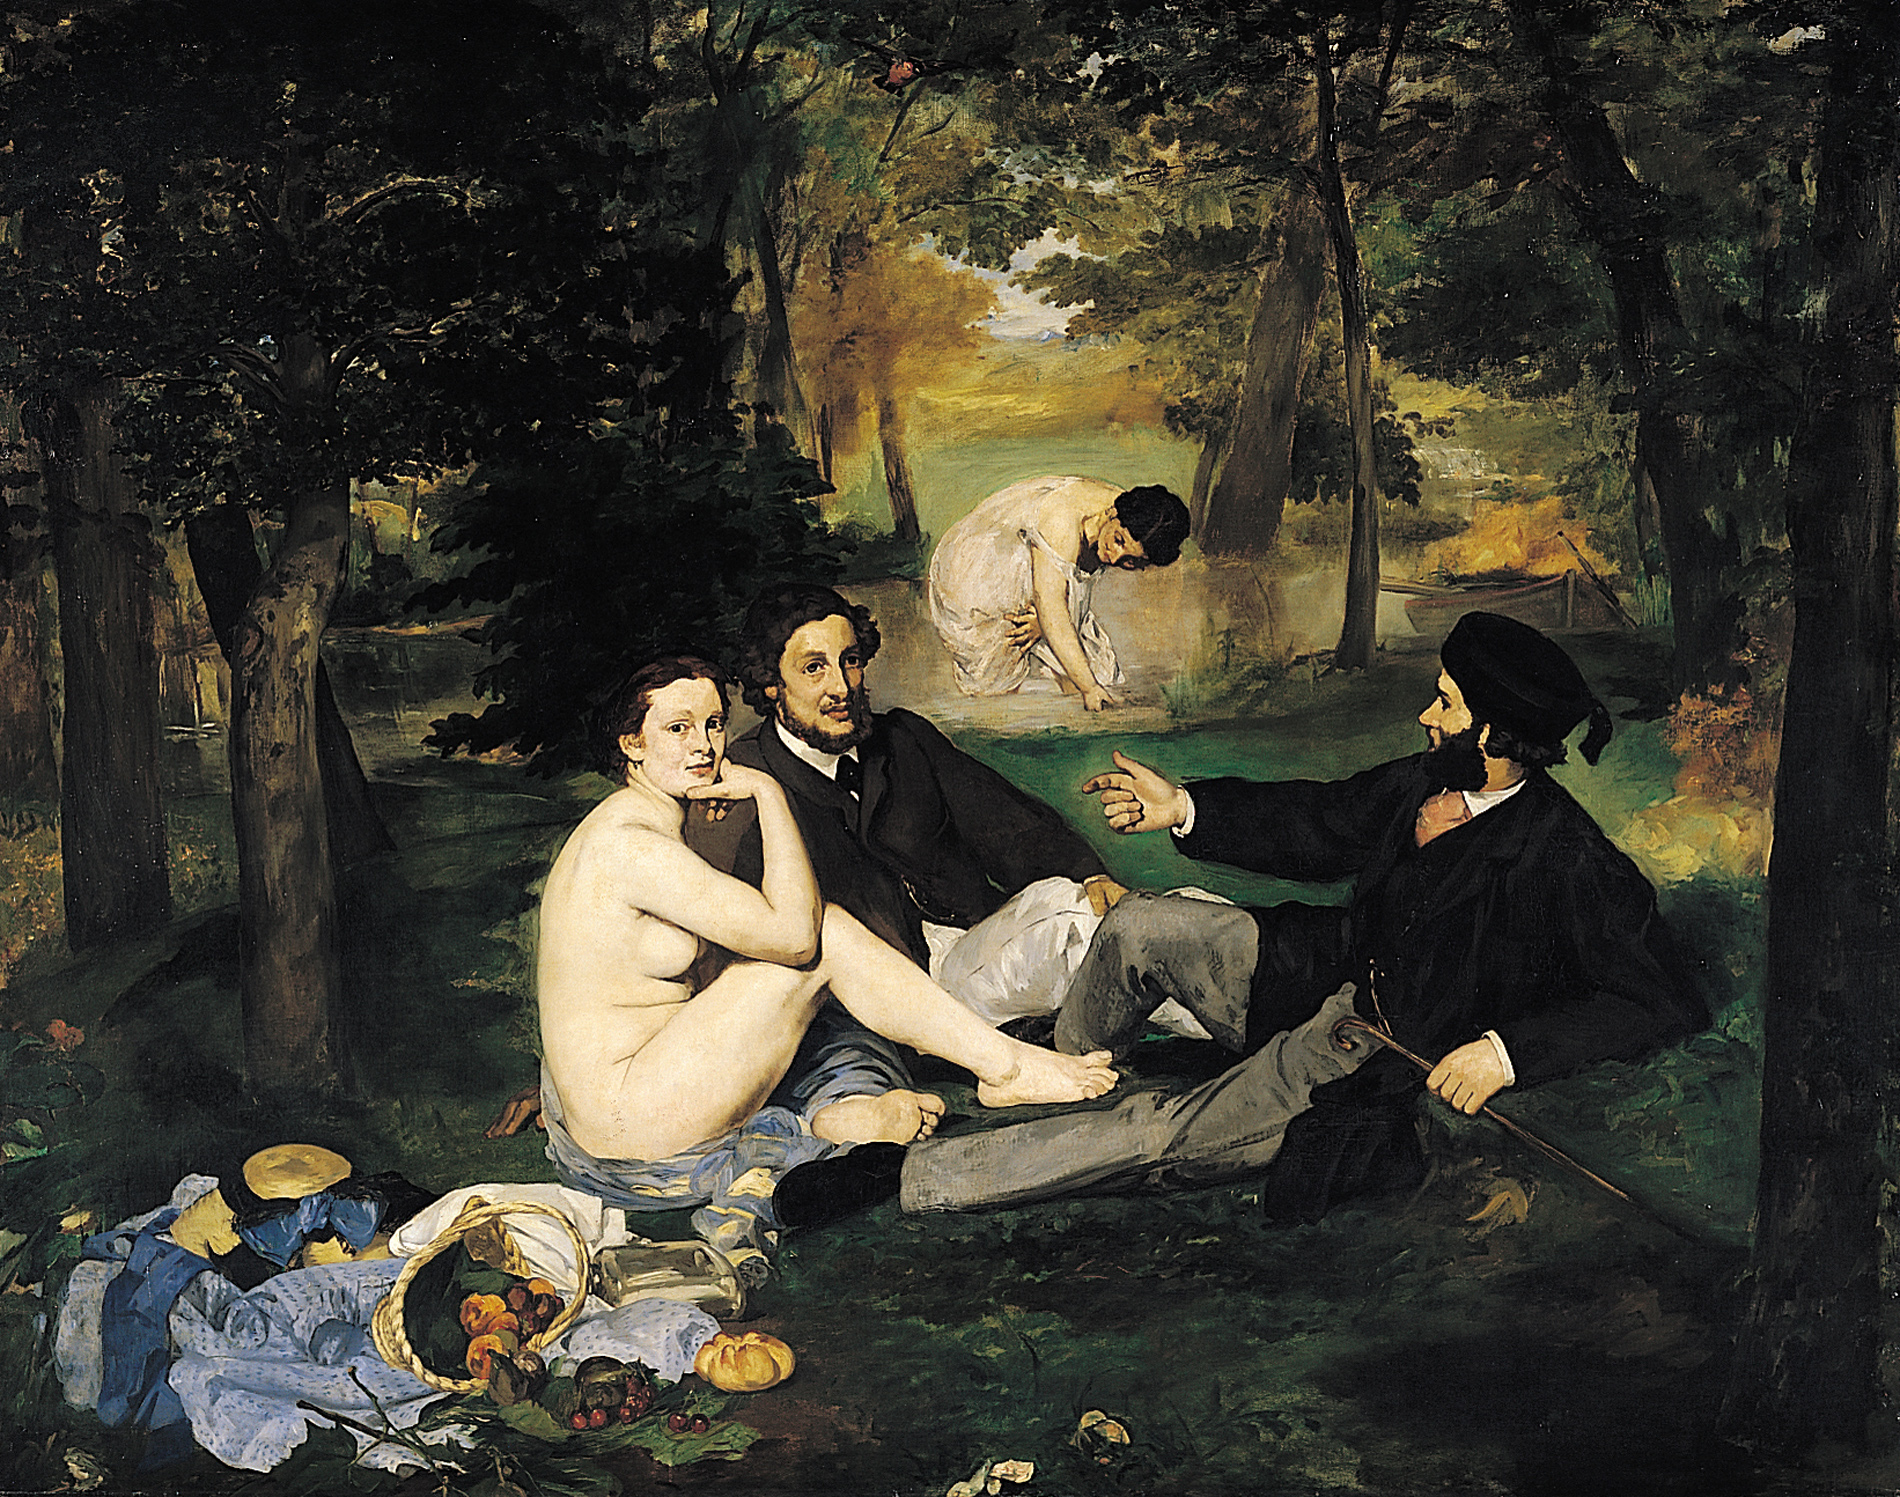 http://allart.biz/up/photos/album/M_N/Edouard_Manet/edouard_manet_1_the_luncheon_on_the_grass.jpg